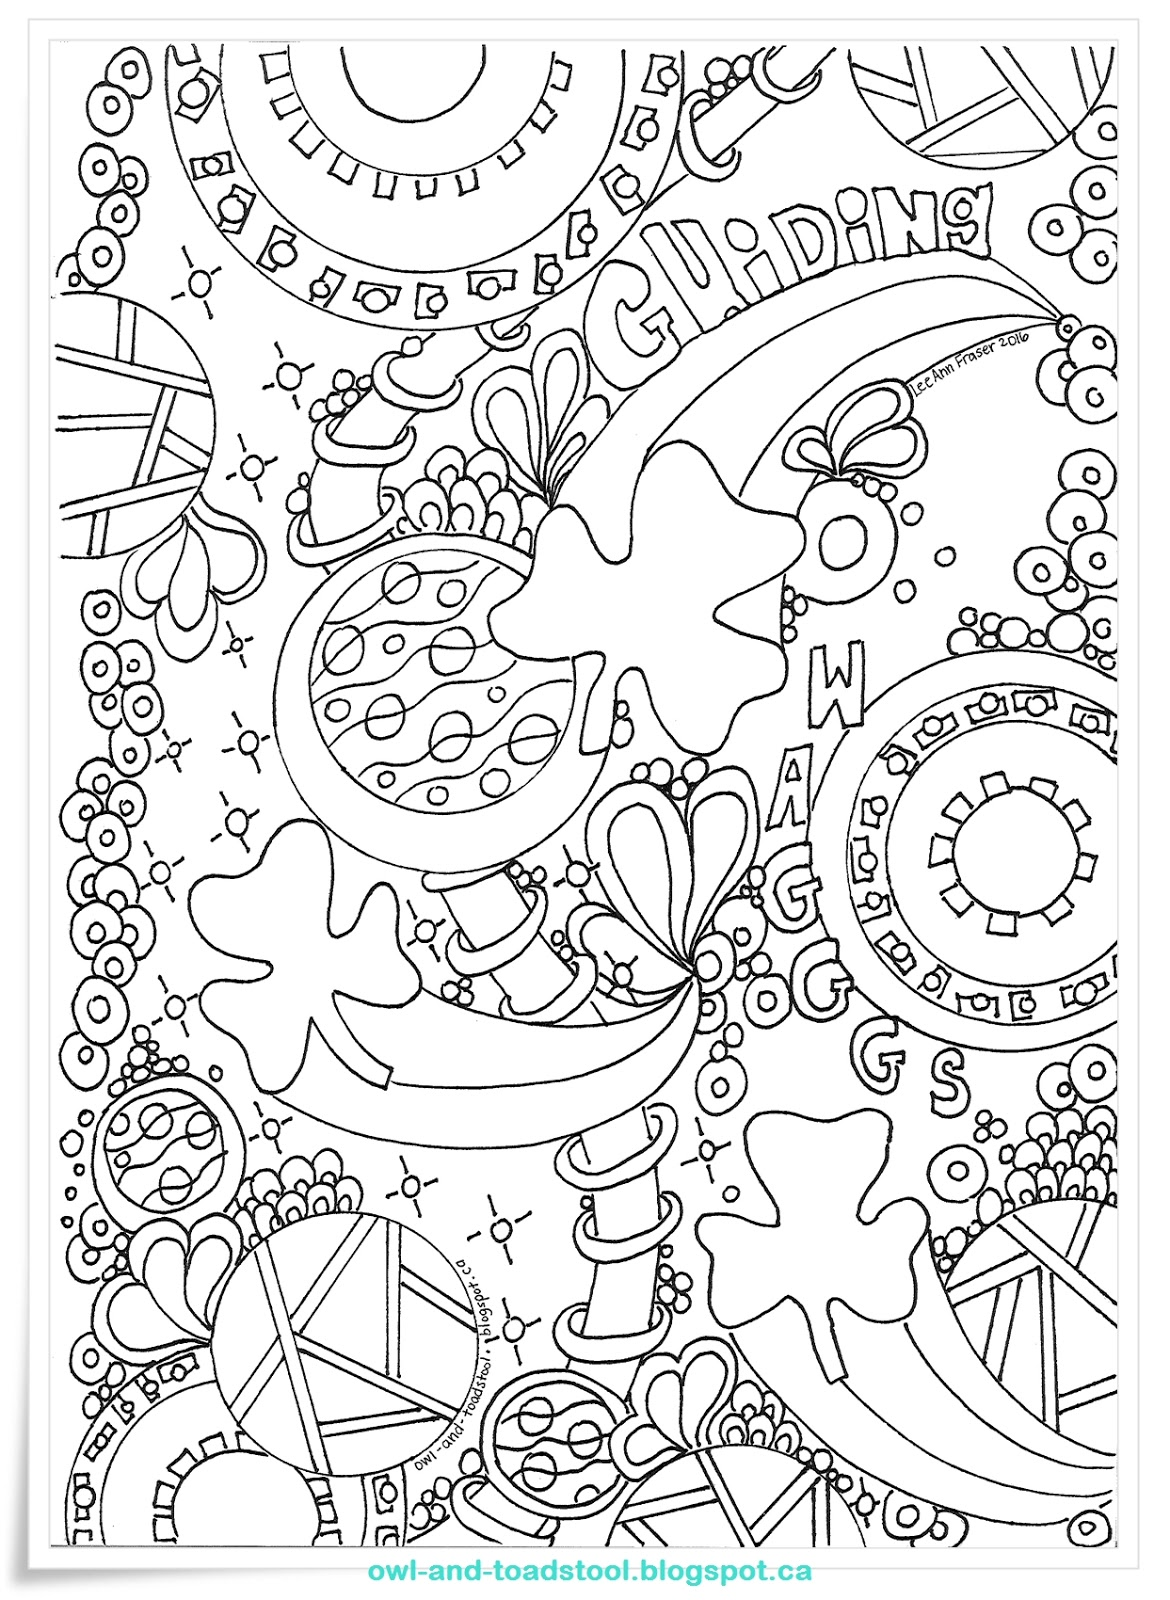 Owl Amp Toadstool Doodle Guiding Wagggs